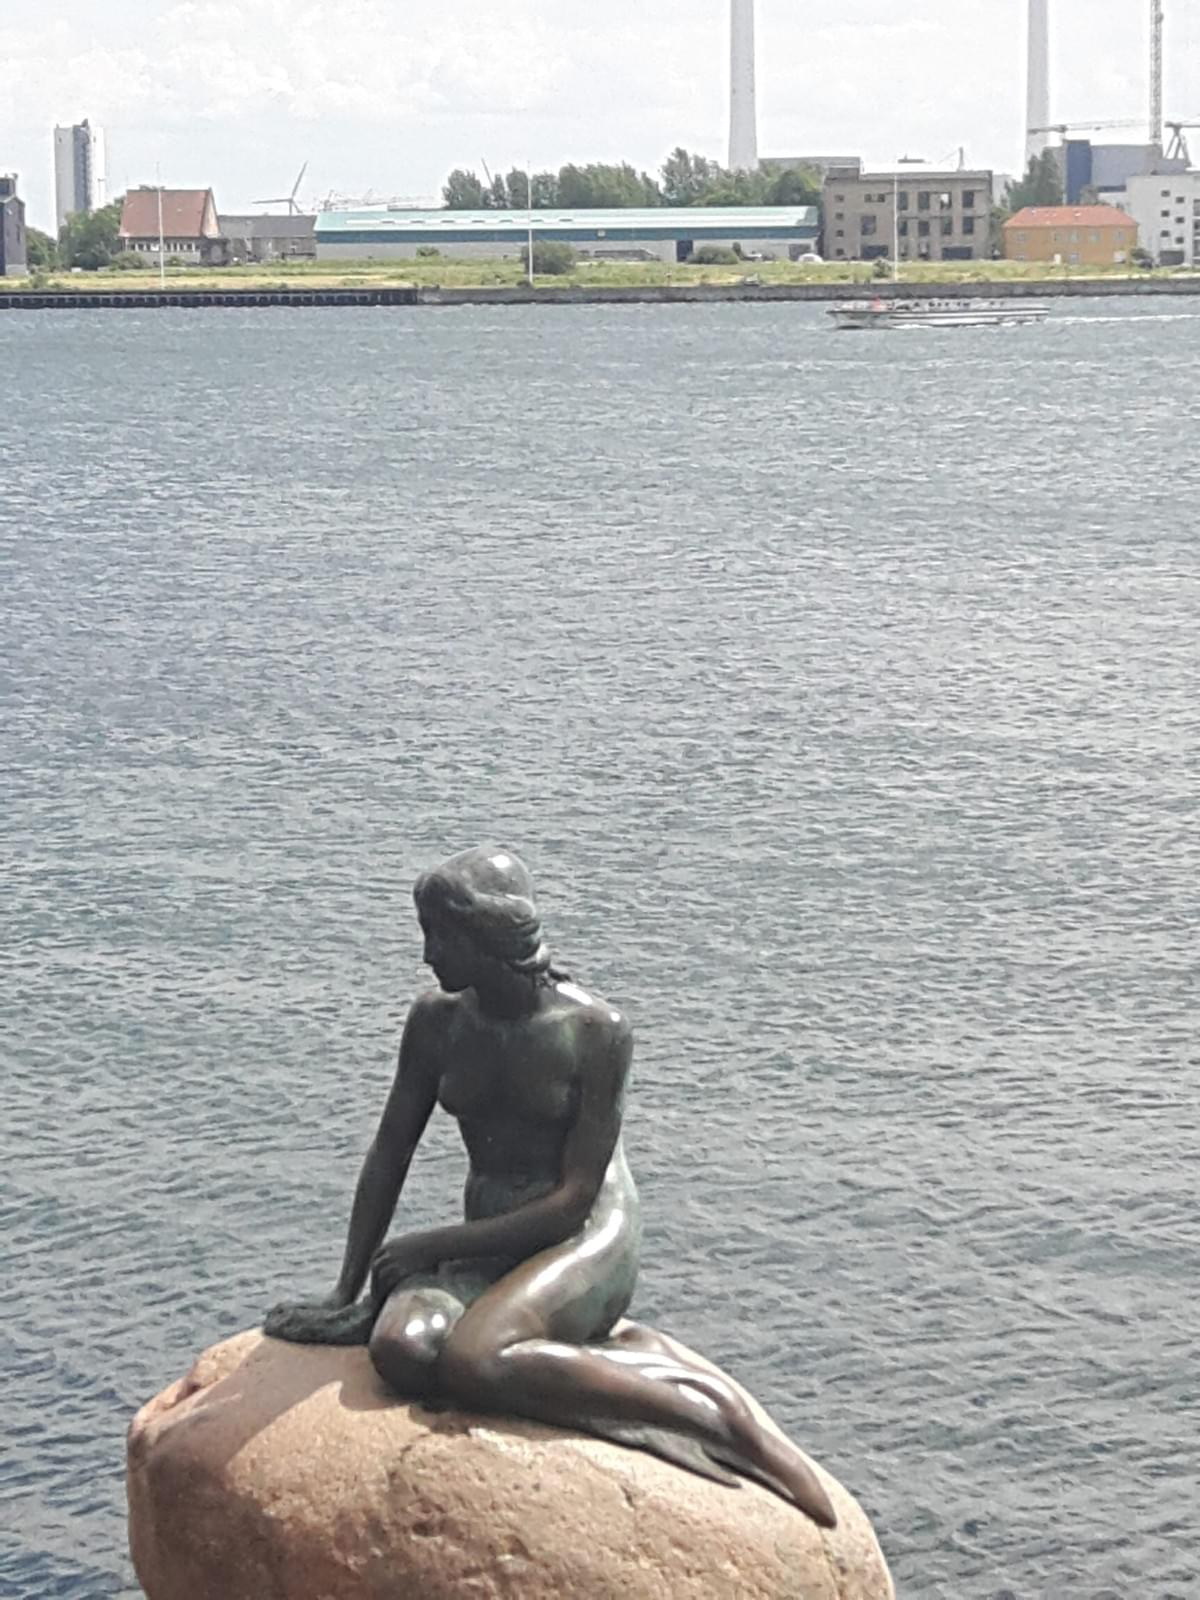 Explore Copenhagen in 24 Hours - The Little Mermaid